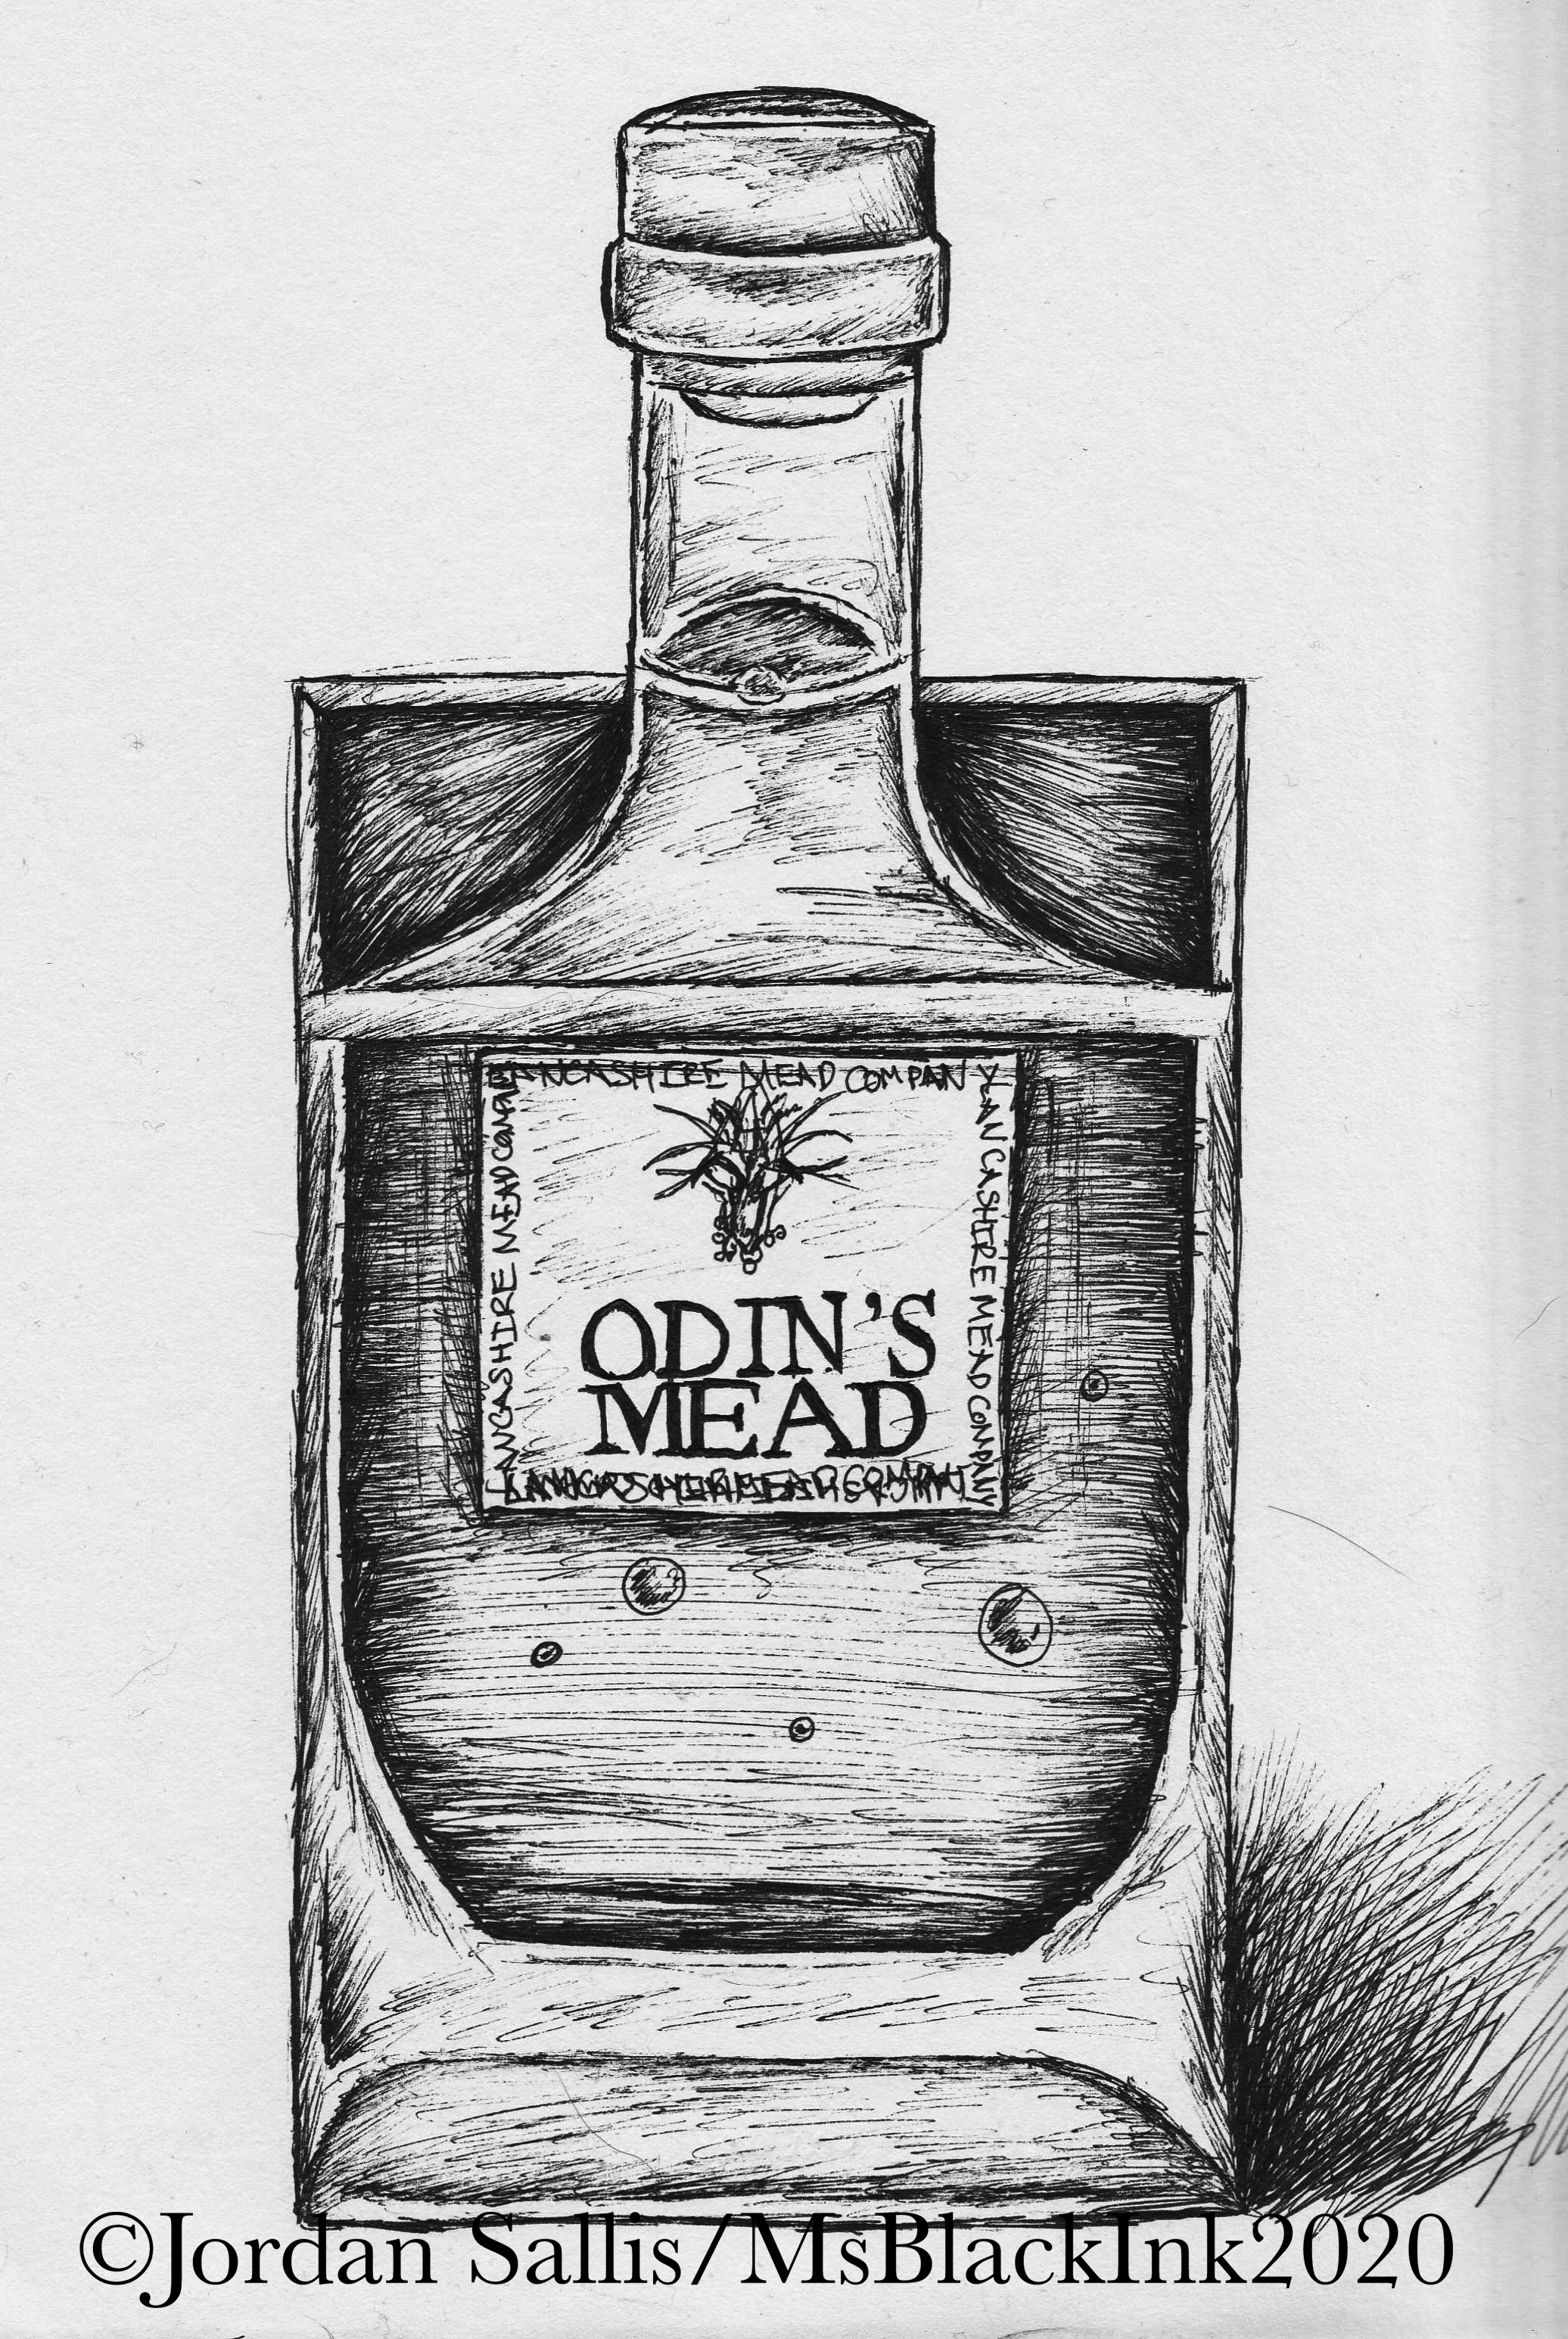 Odin's Mead - Lanchashire Mead